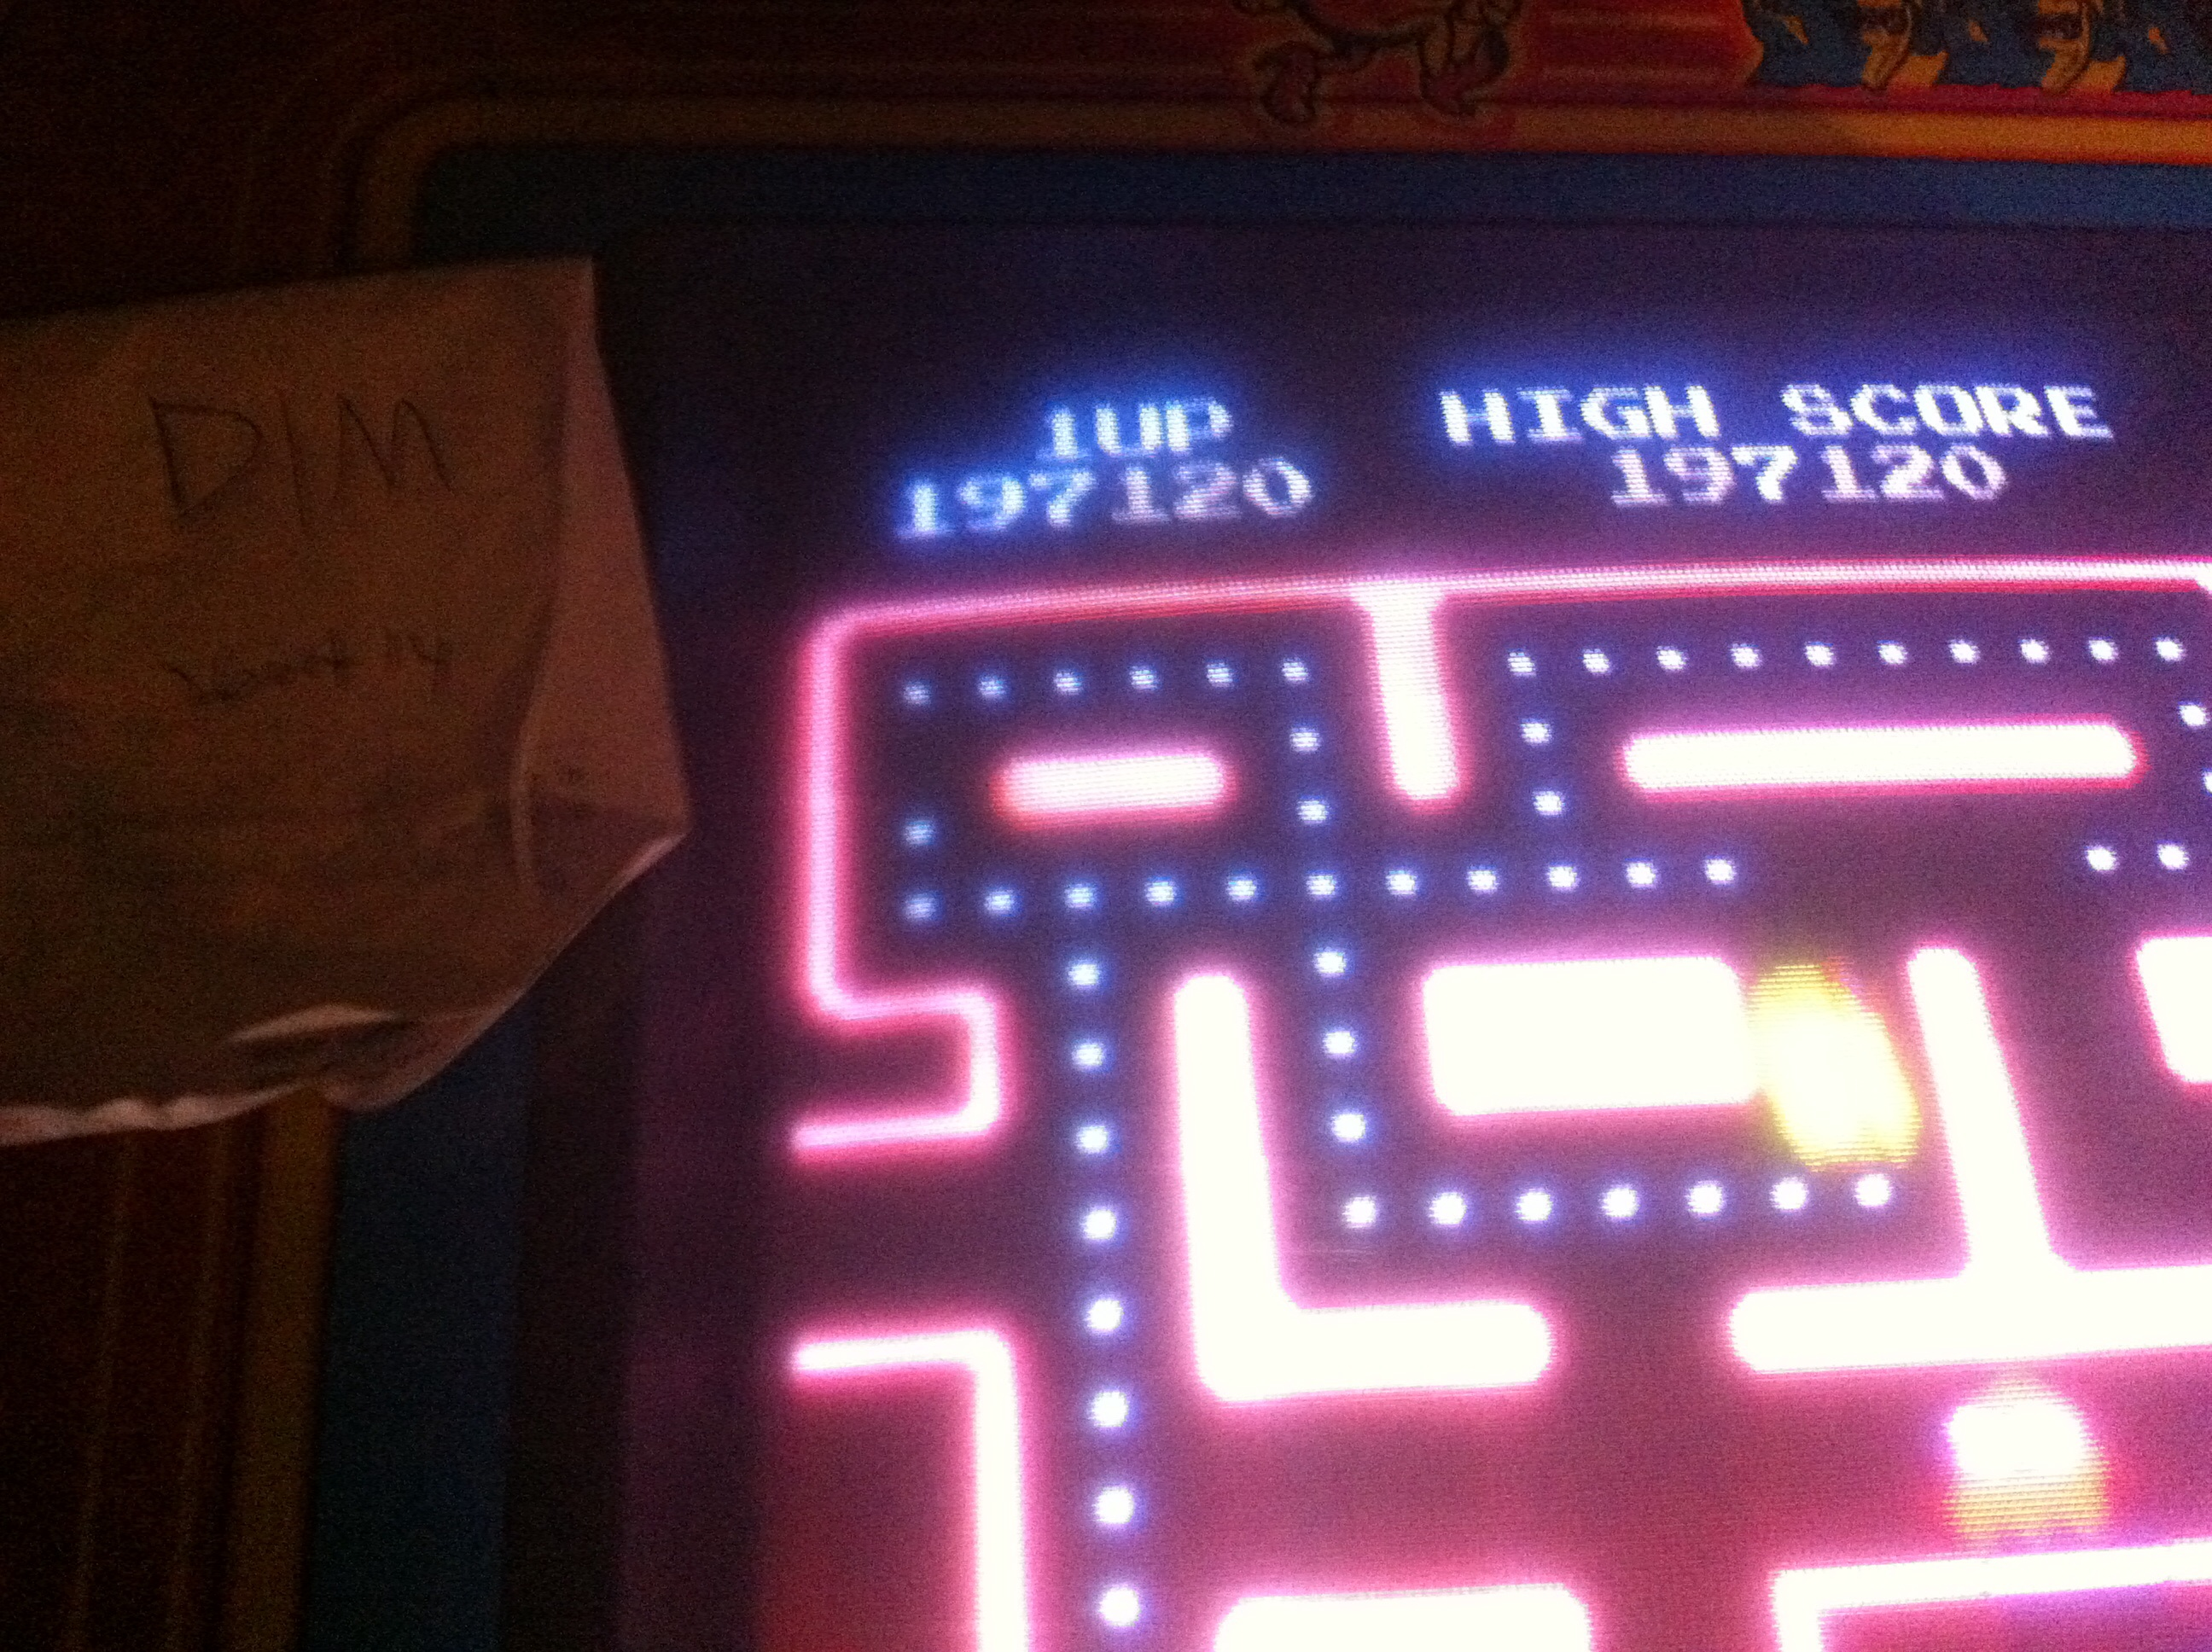 DIM: Ms. Pac-Man [Turbo] (Arcade) 197,120 points on 2014-10-26 17:10:34